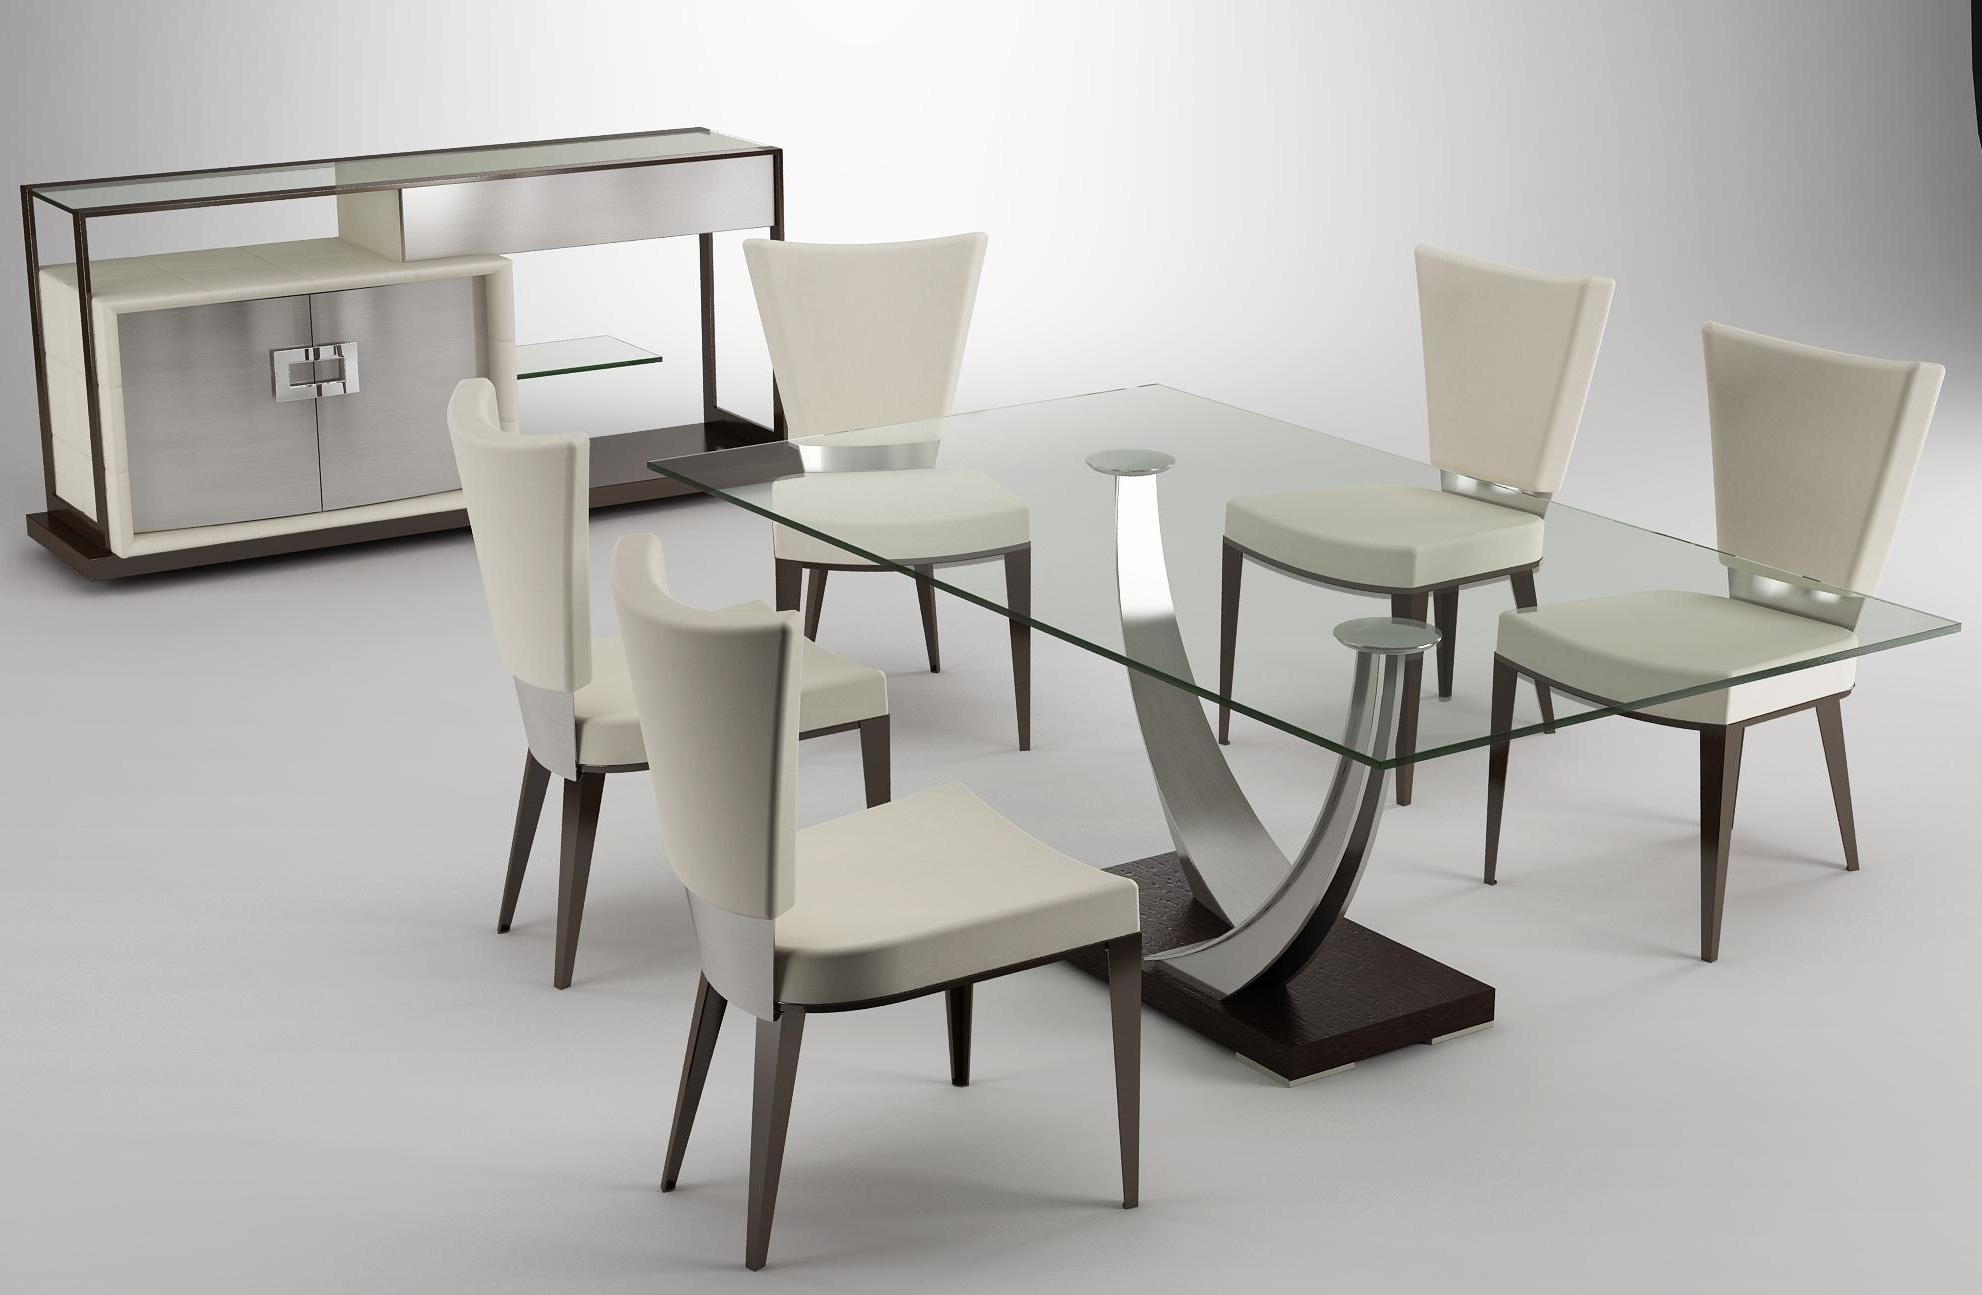 Current 19 Magnificent Modern Dining Tables You Need To See Right Now Throughout Modern Dining Tables (Gallery 3 of 25)